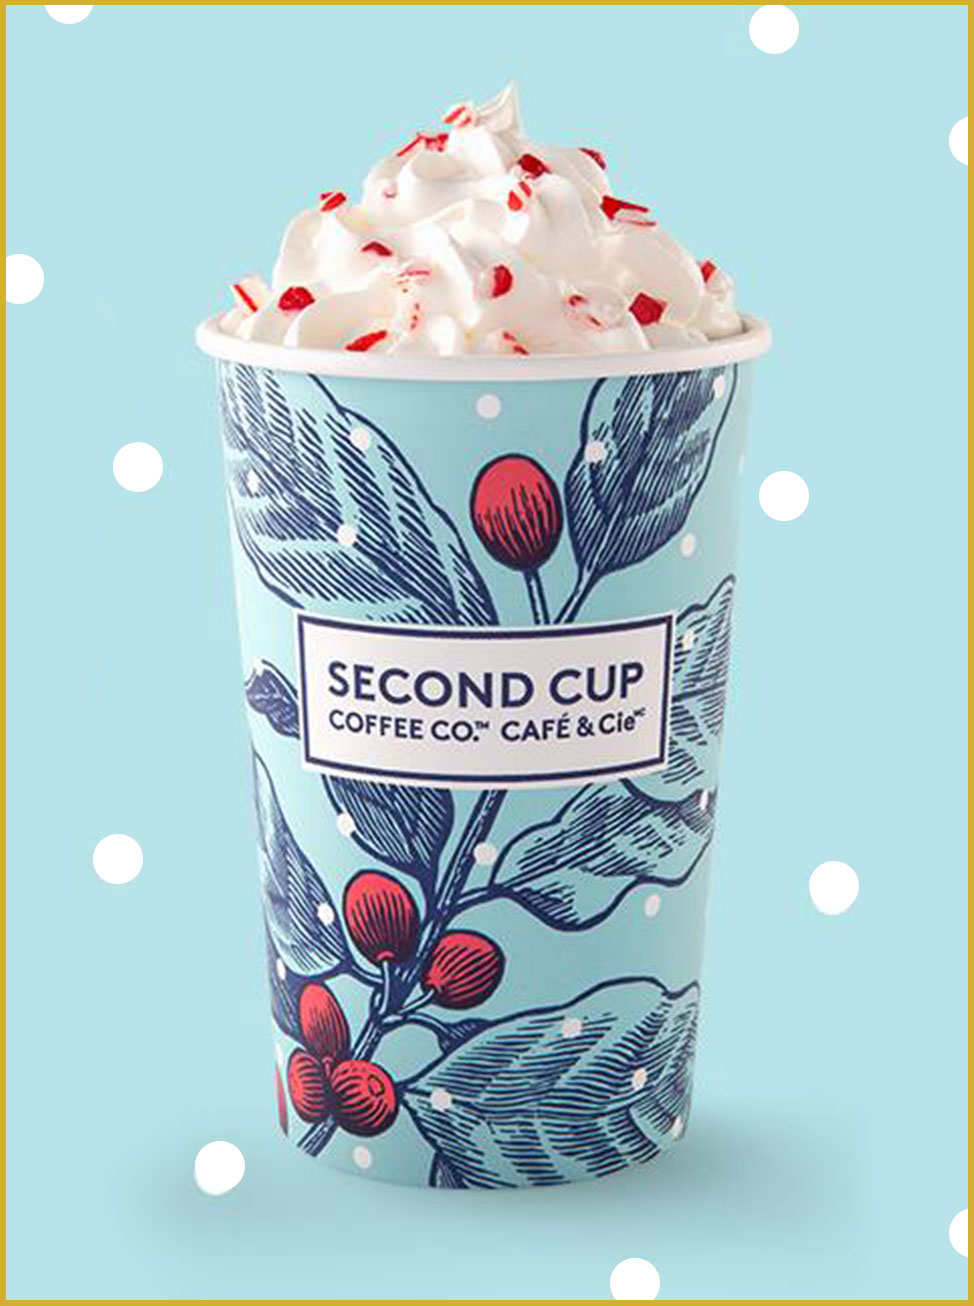 Second Cup Holiday Cup for 2017